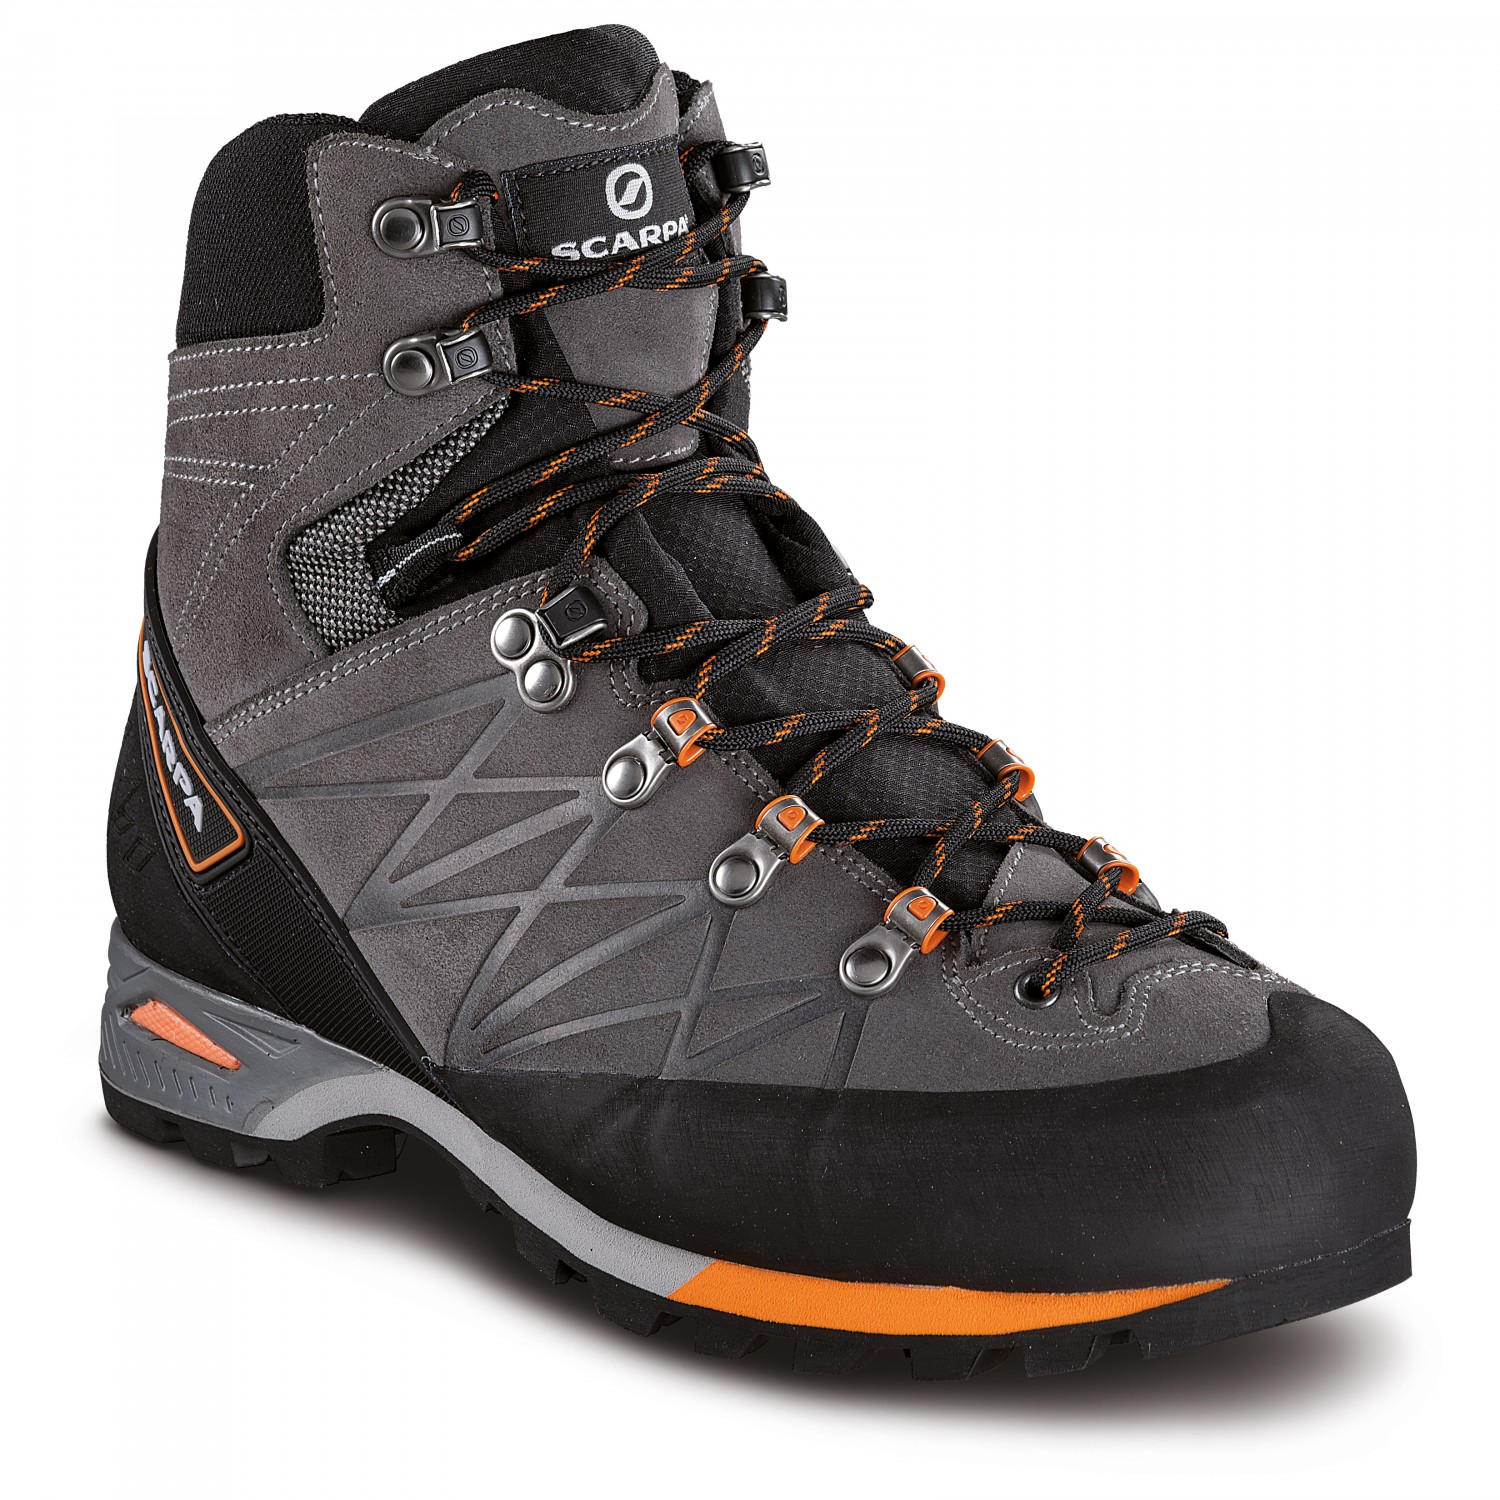 Scarpa Marmolada Pro OD - Trekking Shoes Men's | Free UK ...